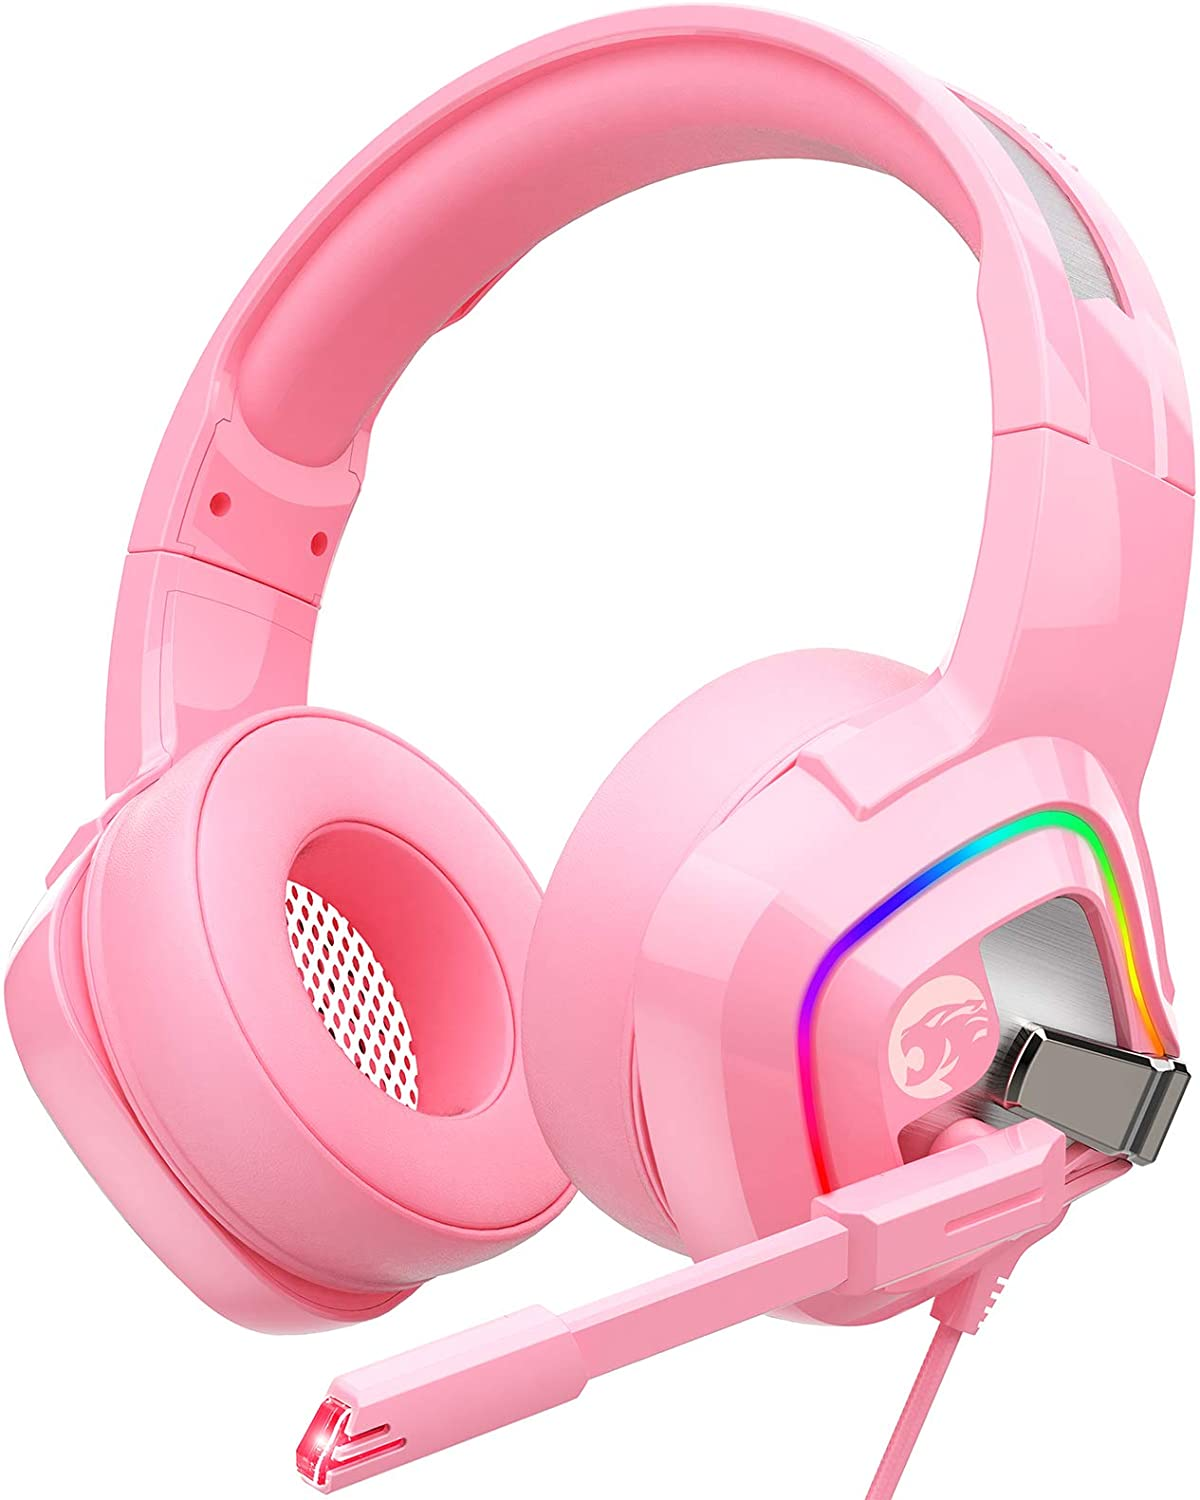 ZIUMIER Z66 Pink Gaming Headset Ranking TOP8 for Ranking TOP8 PC PS4 Xbox PS5 One Wire